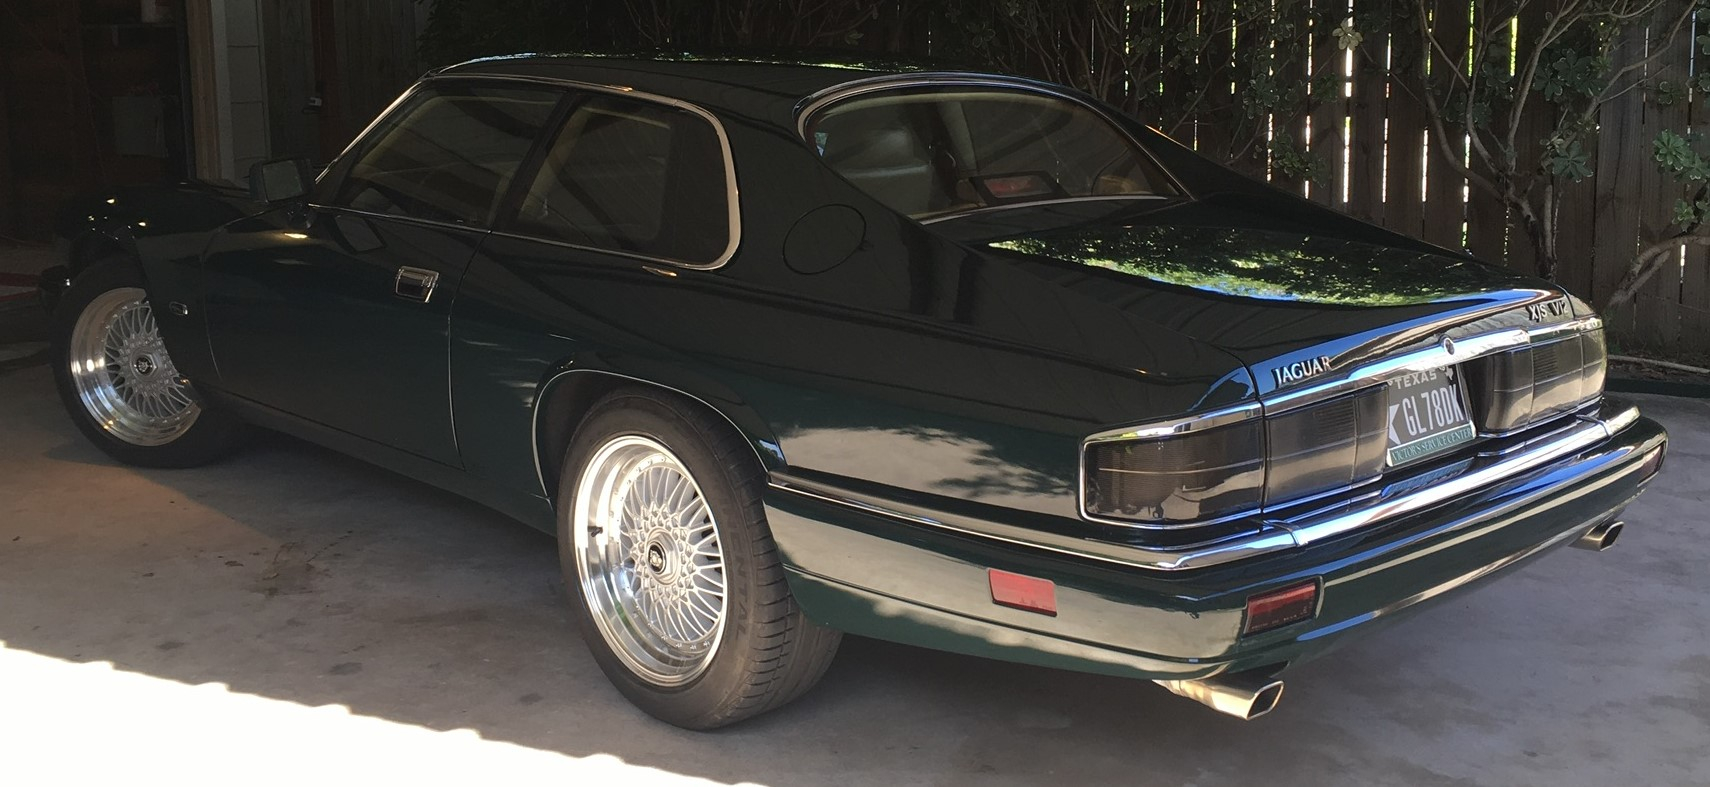 For Sale 1994 Jaguar Xjs Fuel Filter Location Transmission And Miscellaneous Servicing By Jag Specialties In Covington La